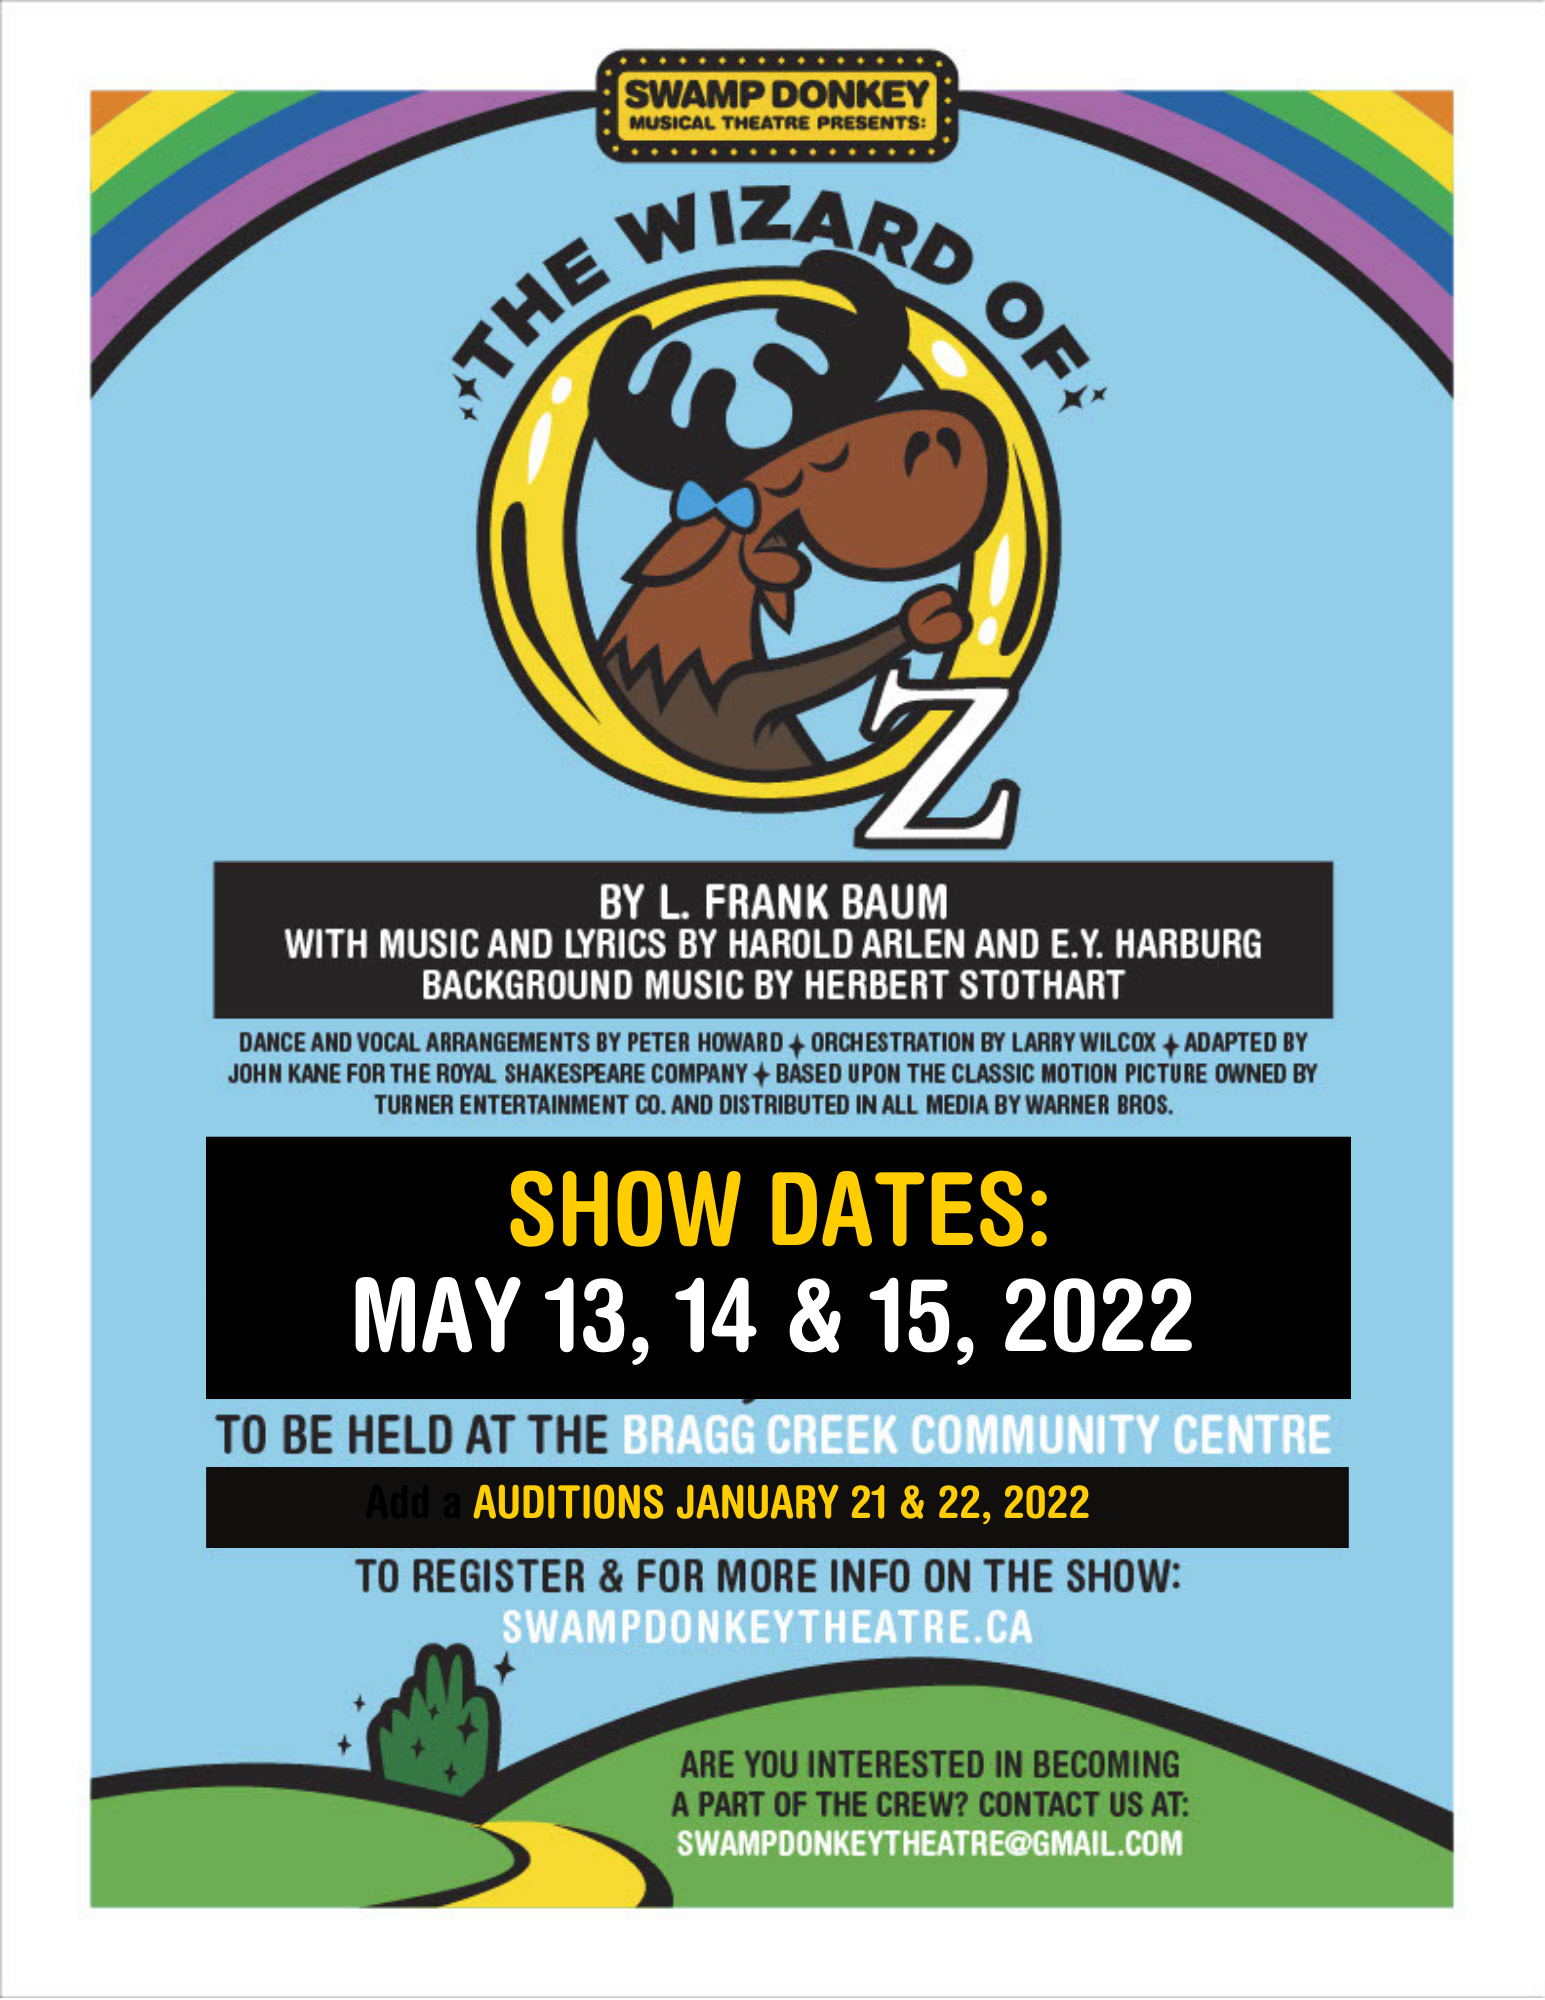 Upload a poster or graphic for your show or festival: